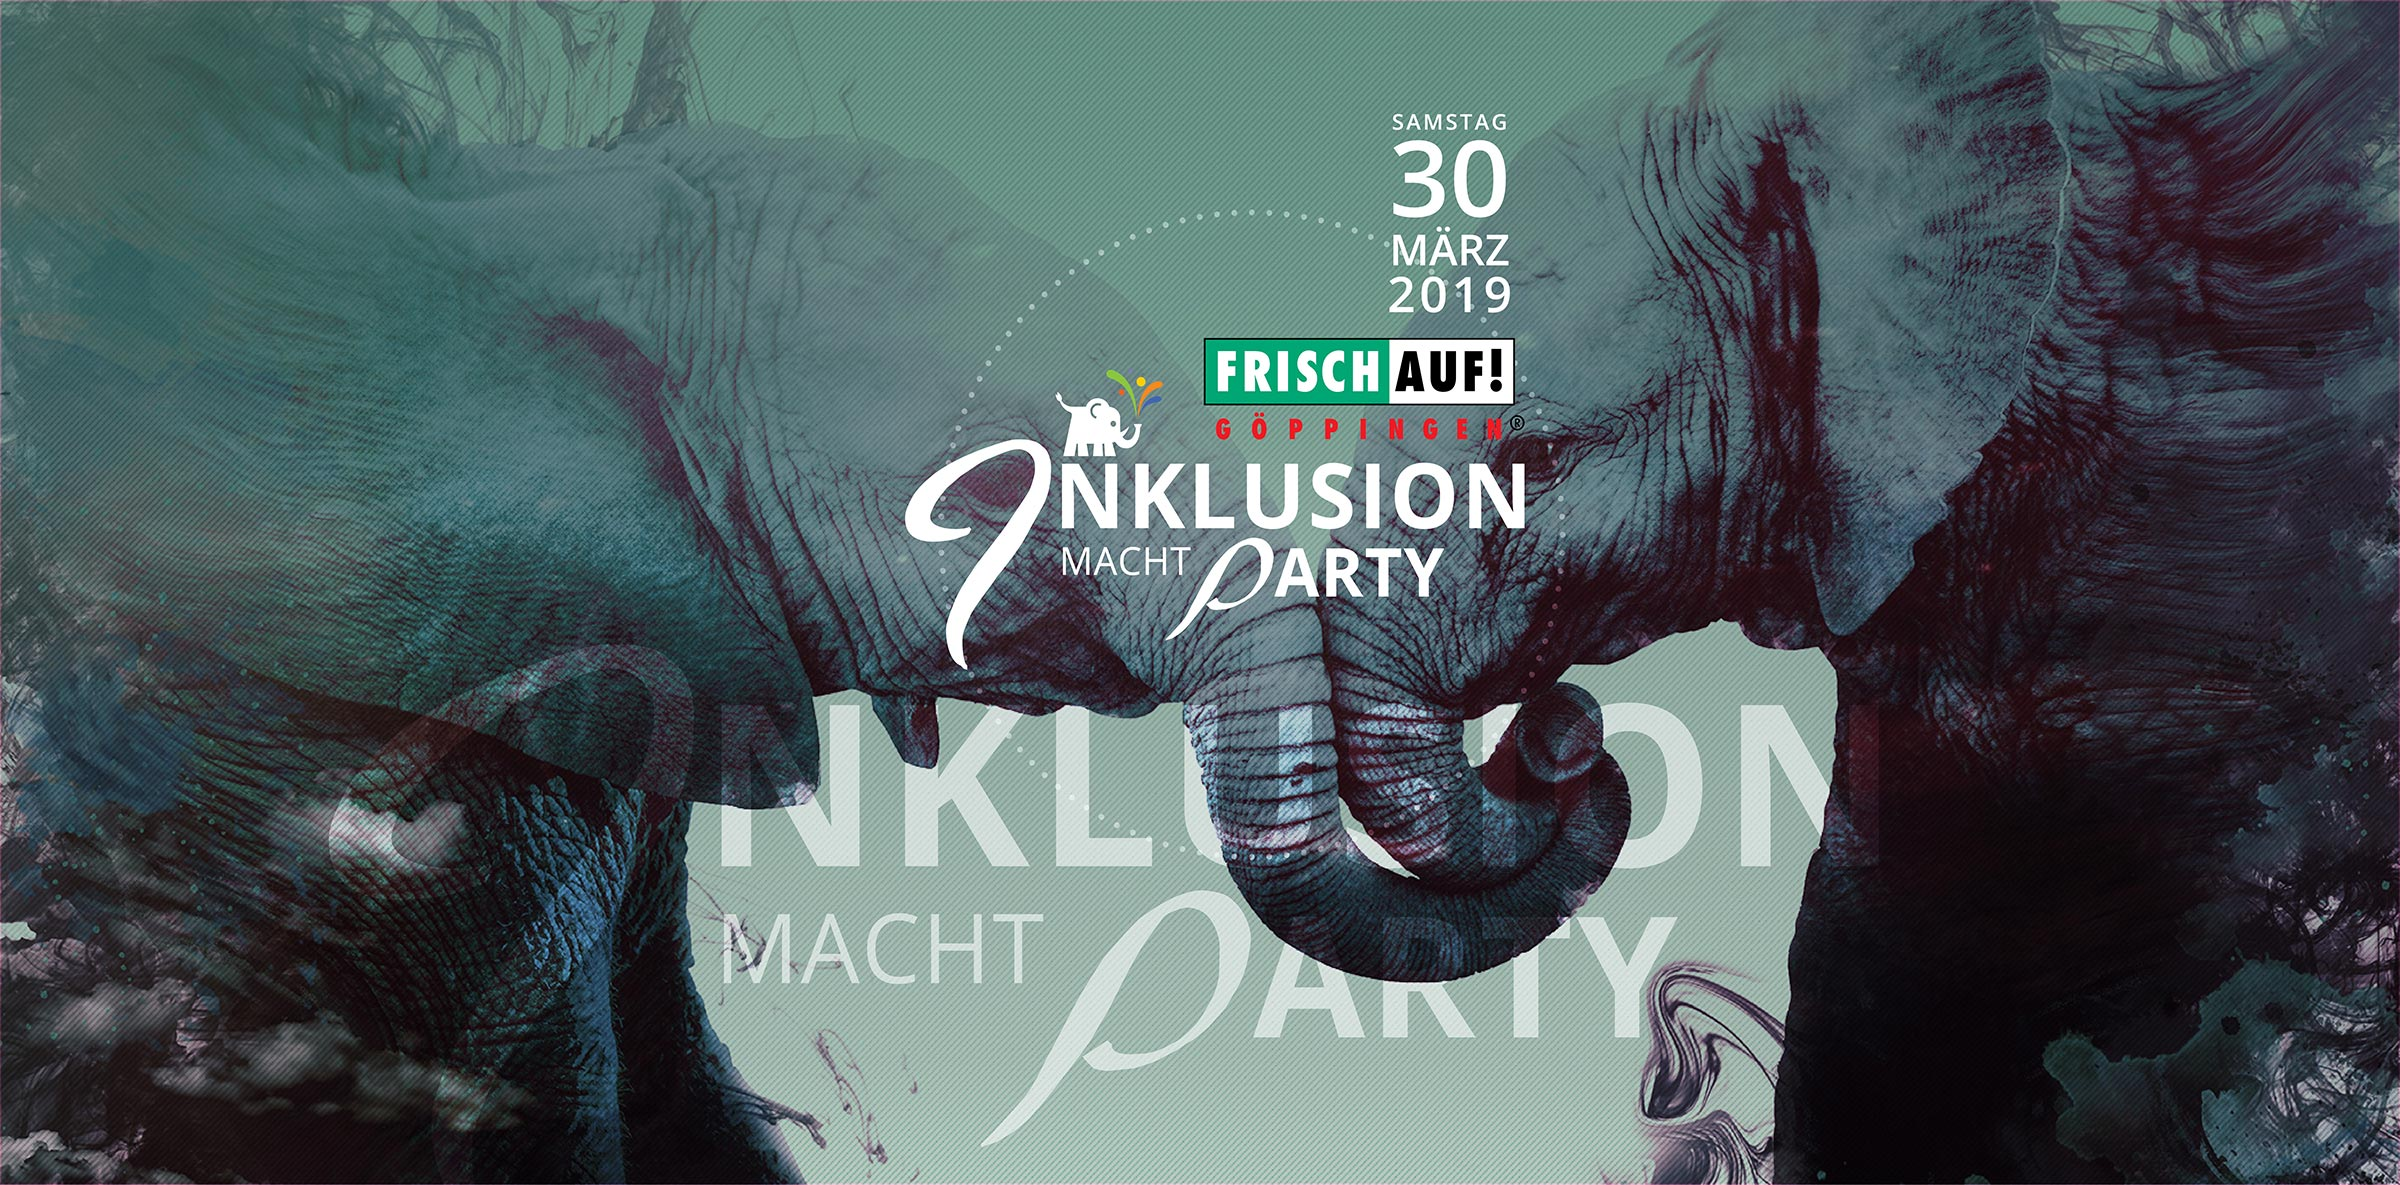 Inklusion macht Party